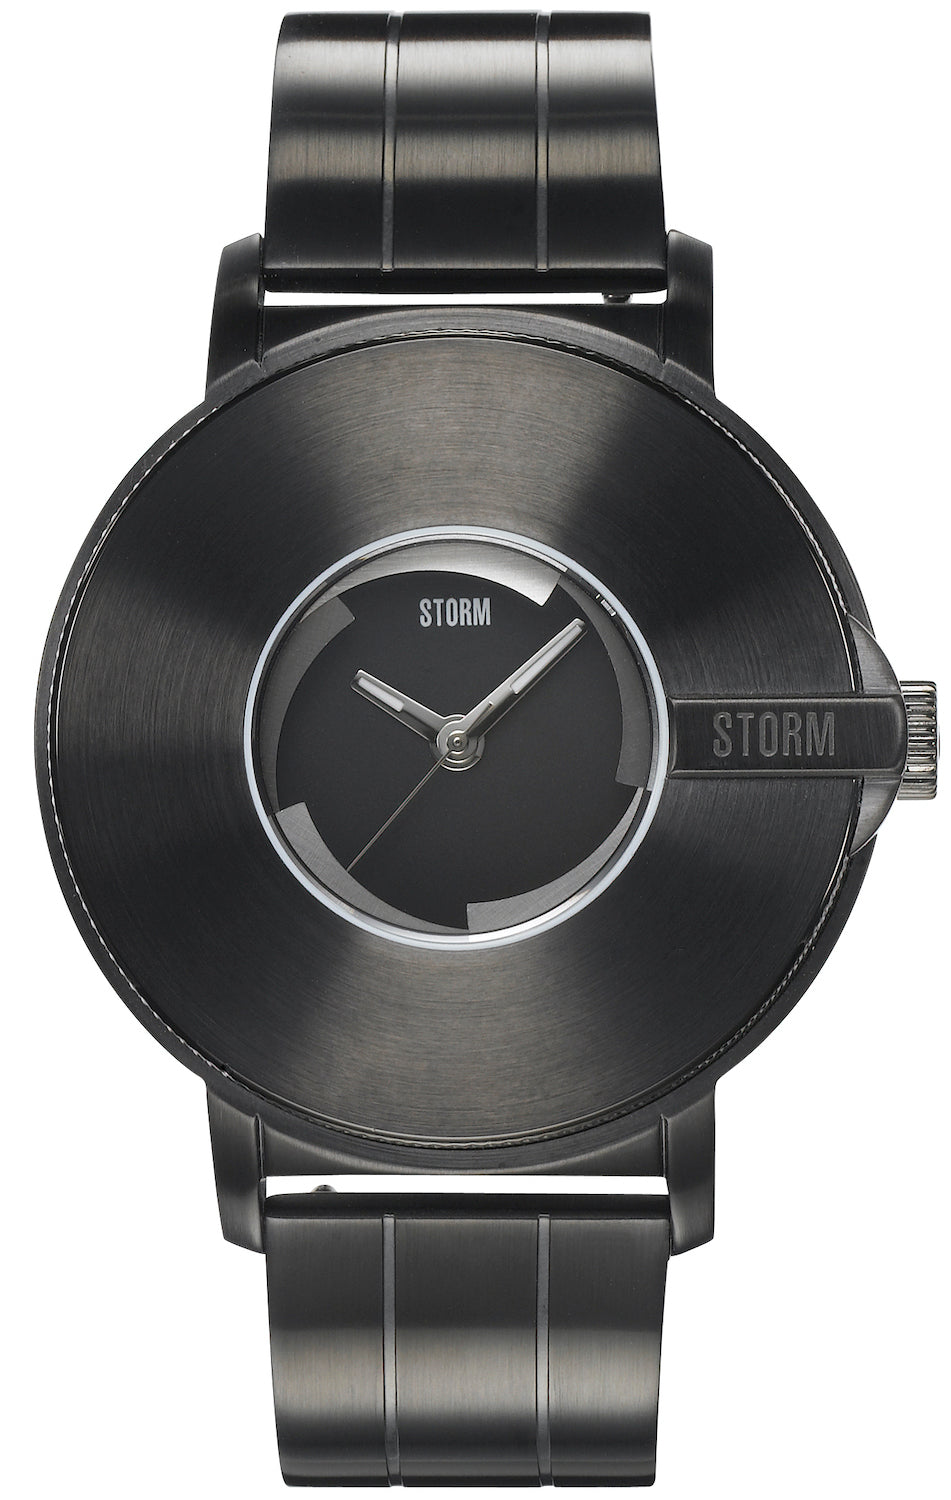 Storm Watch Camera V6 Slate Limited Edition